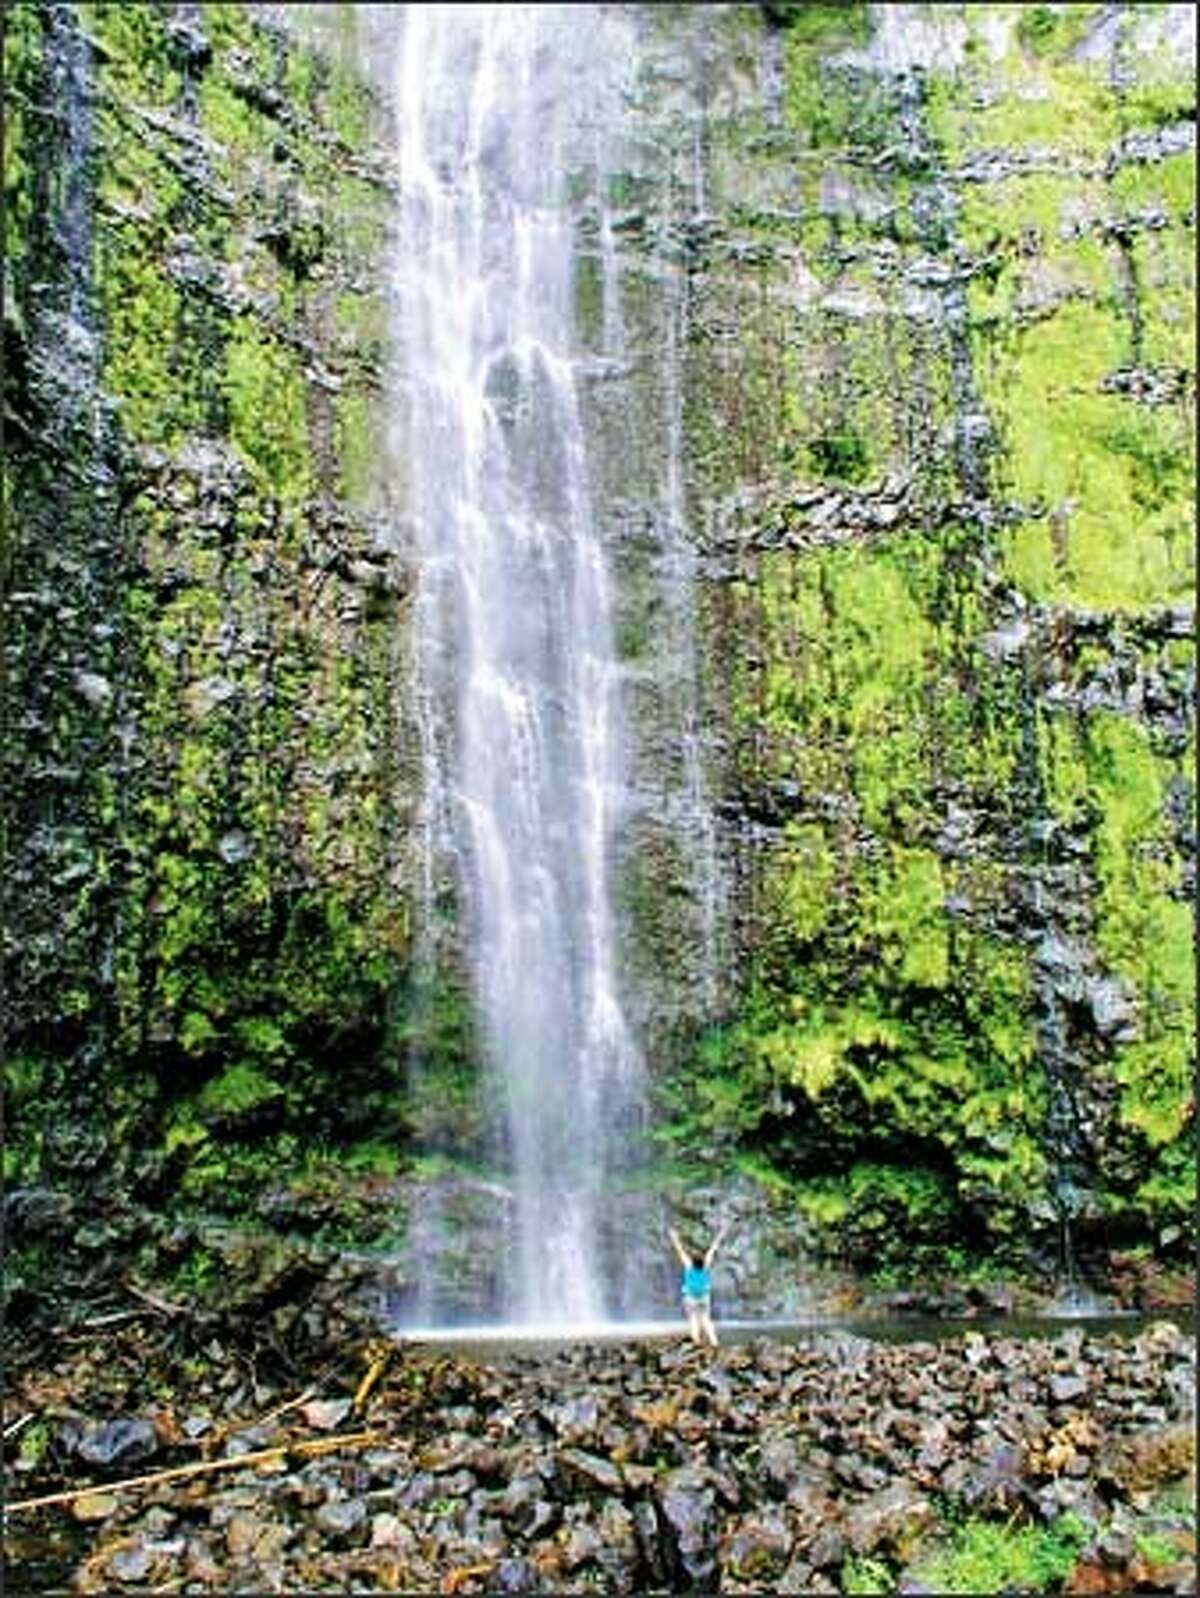 The reward at the end of the Pipiwai Trail is the 400-foot Waimoku Falls.